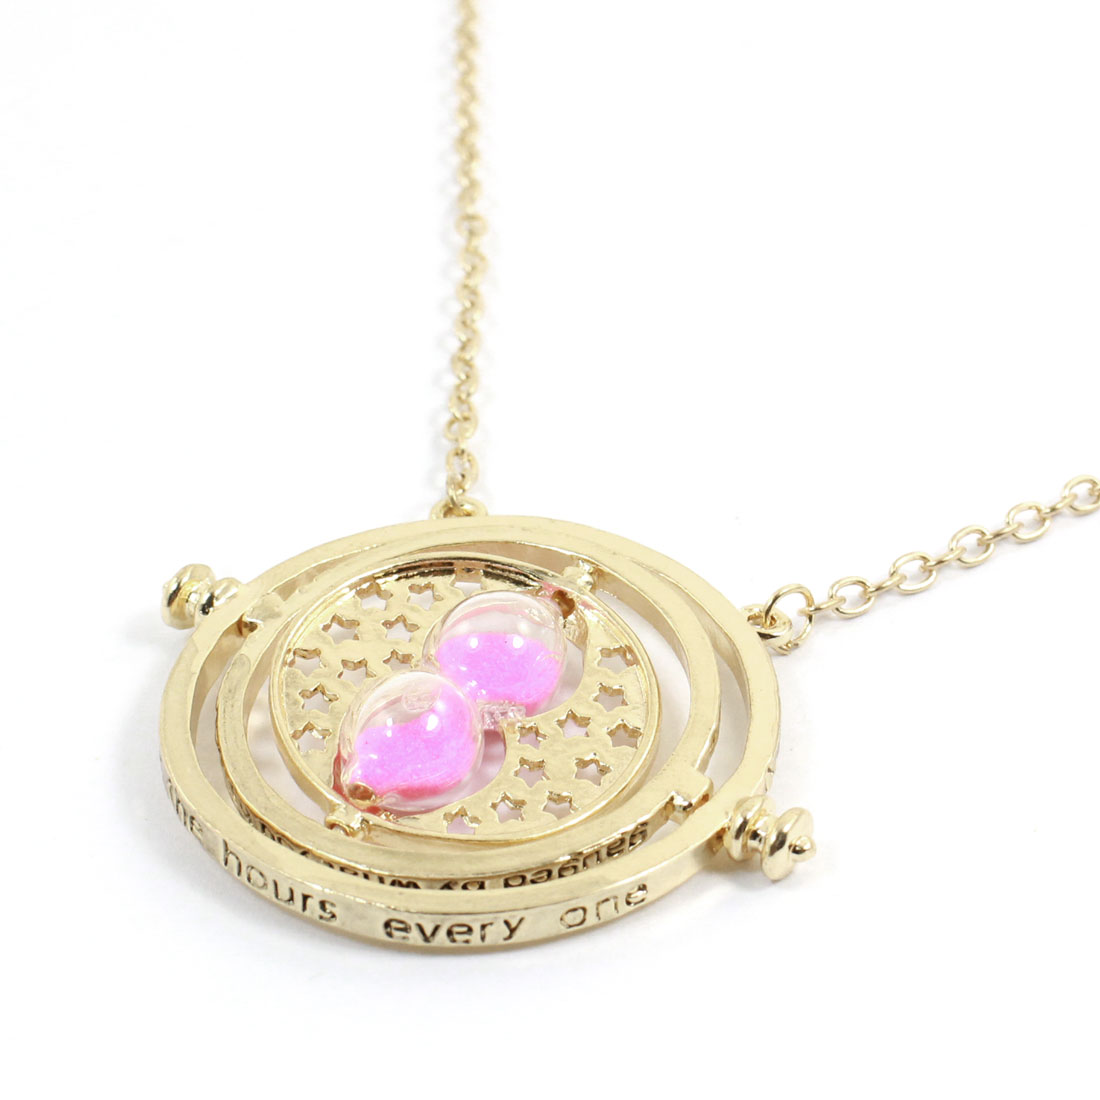 "Neck Ornament Fuchsia Sand Clock Pendant 20"" Girth Necklace Chain Gold Tone for Lady"